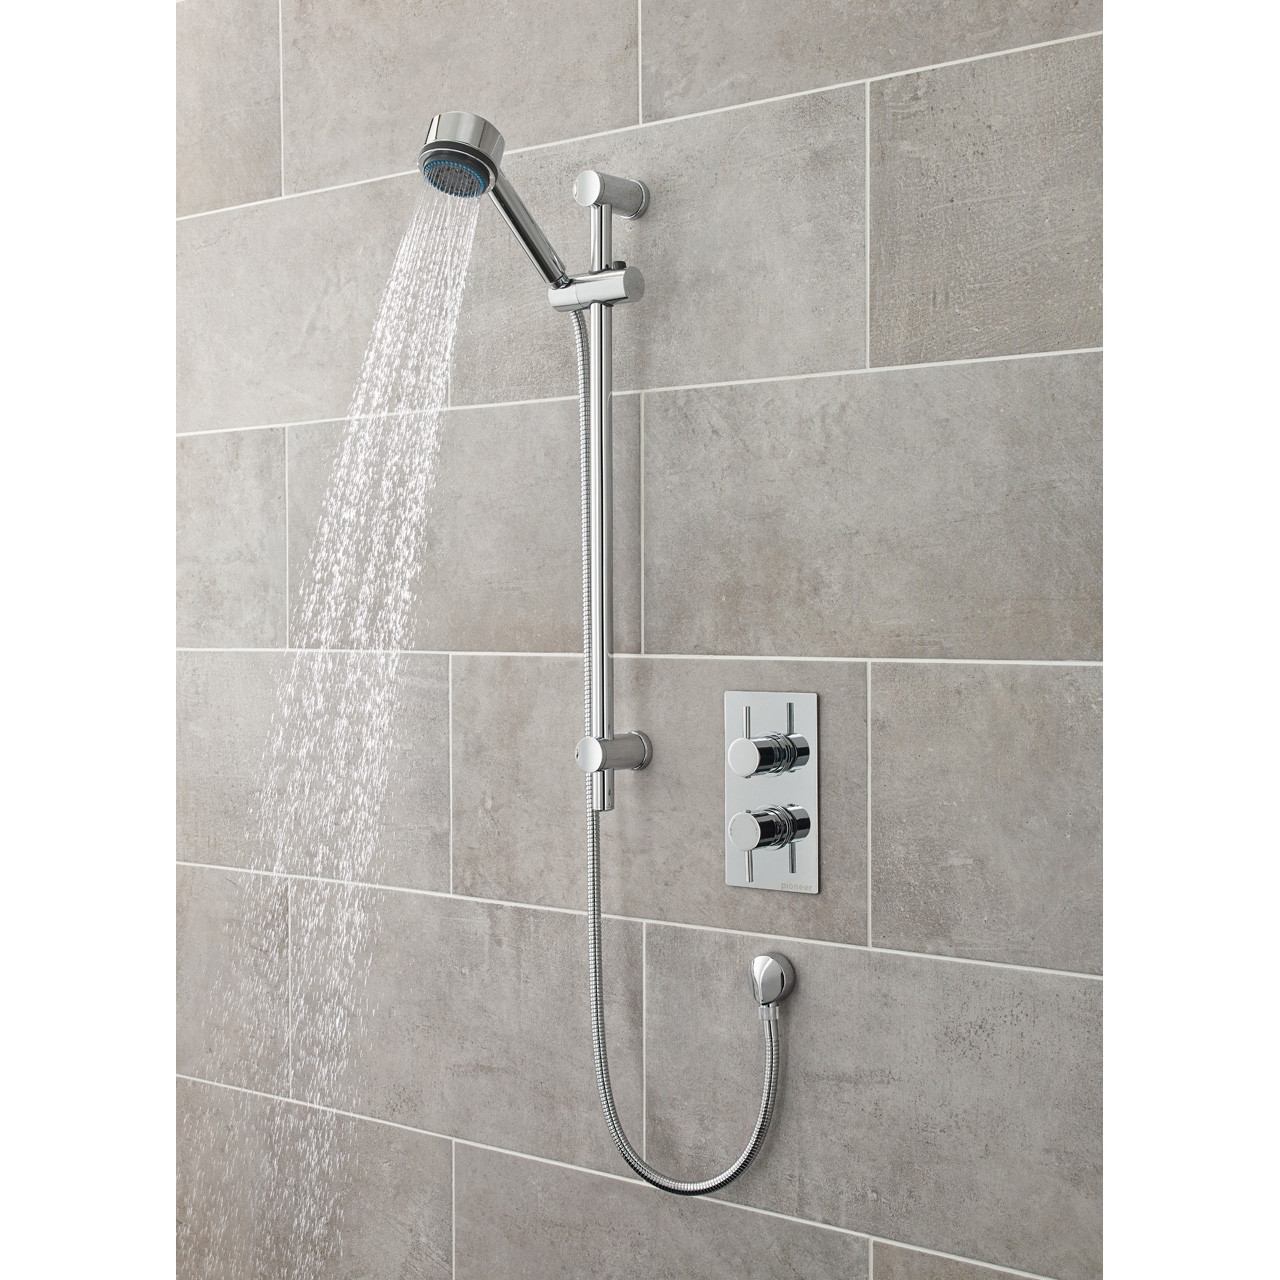 Premier Pioneer Twin Thermostatic Valve Round Handles - JTY370